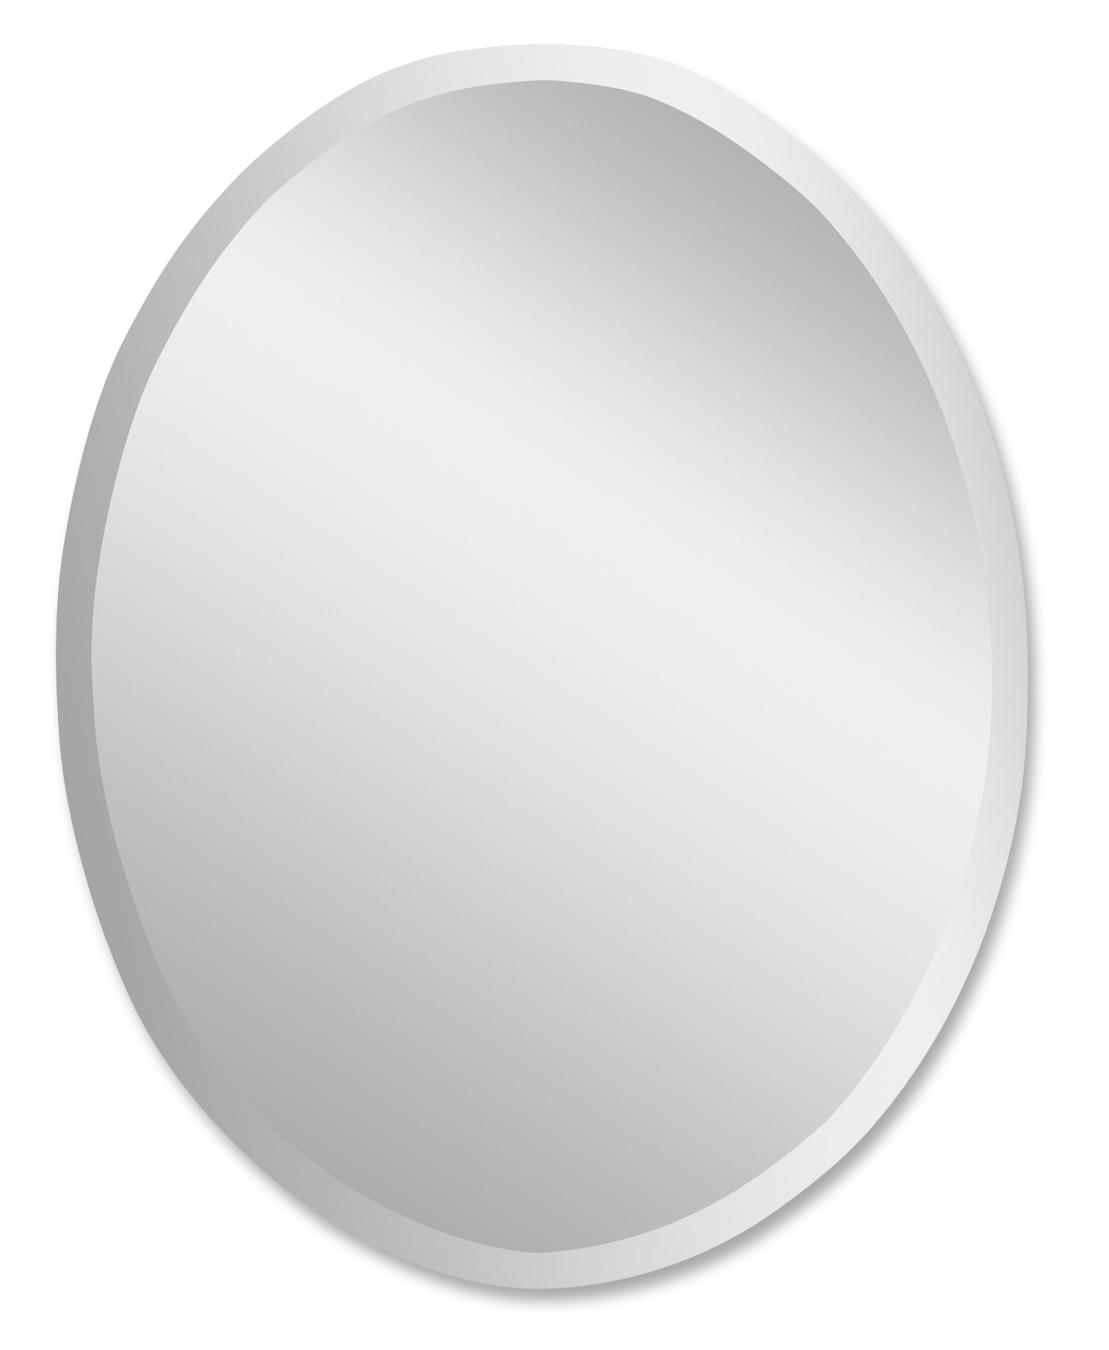 Uttermost Mirrors Large Oval - Item Number: 19590 B